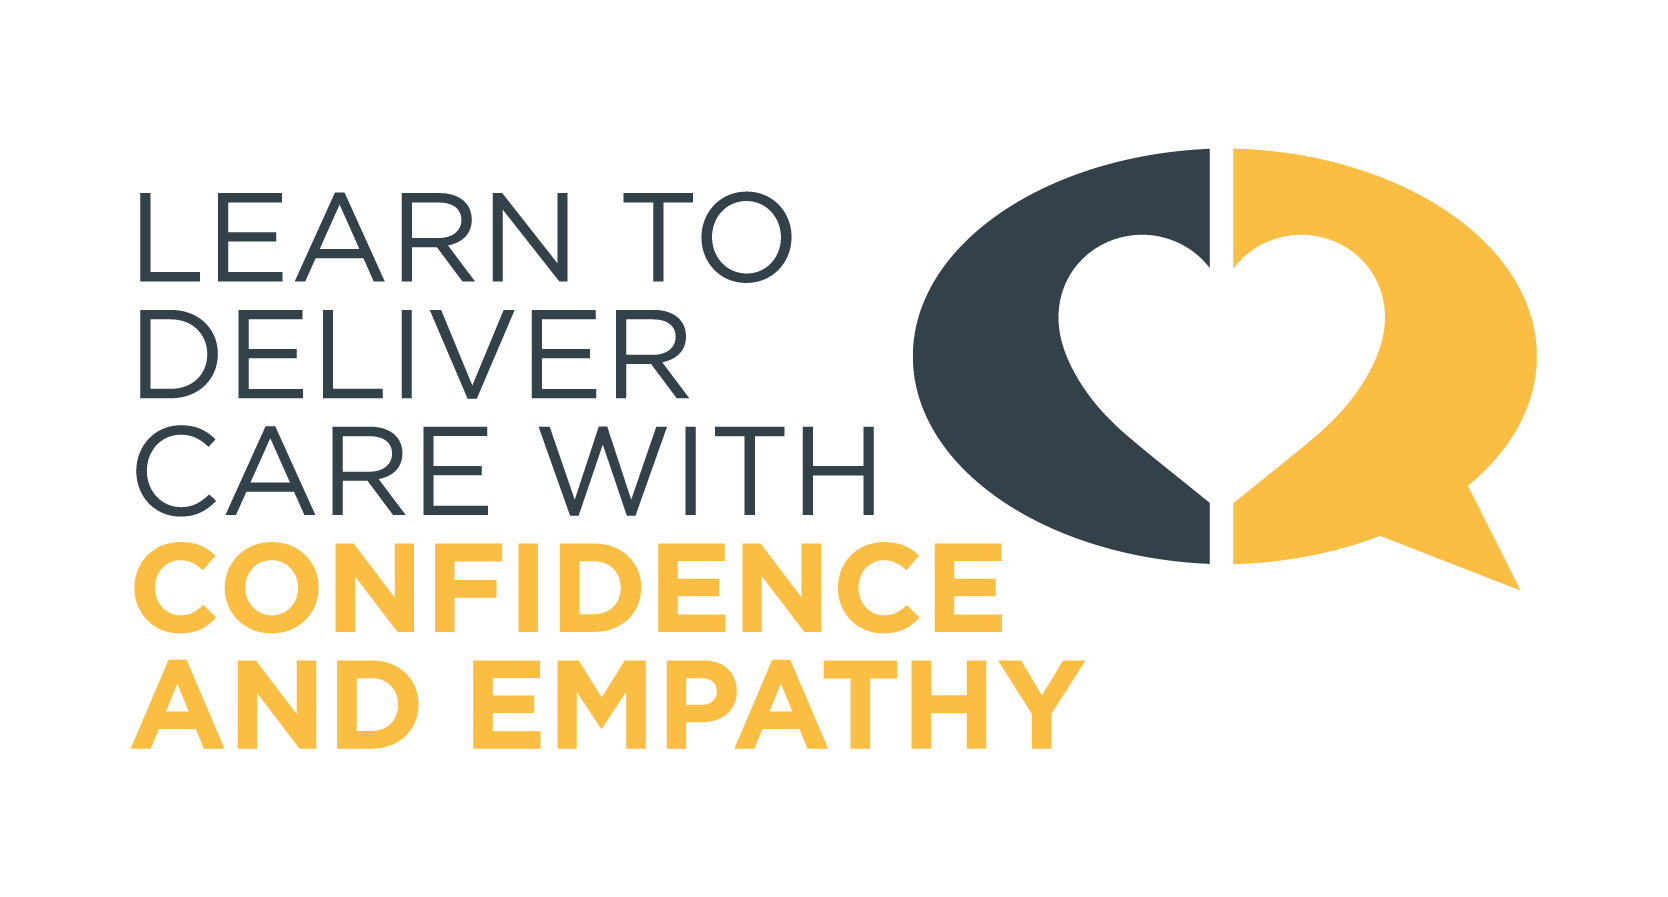 Learn to deliver care with confidence and empathy